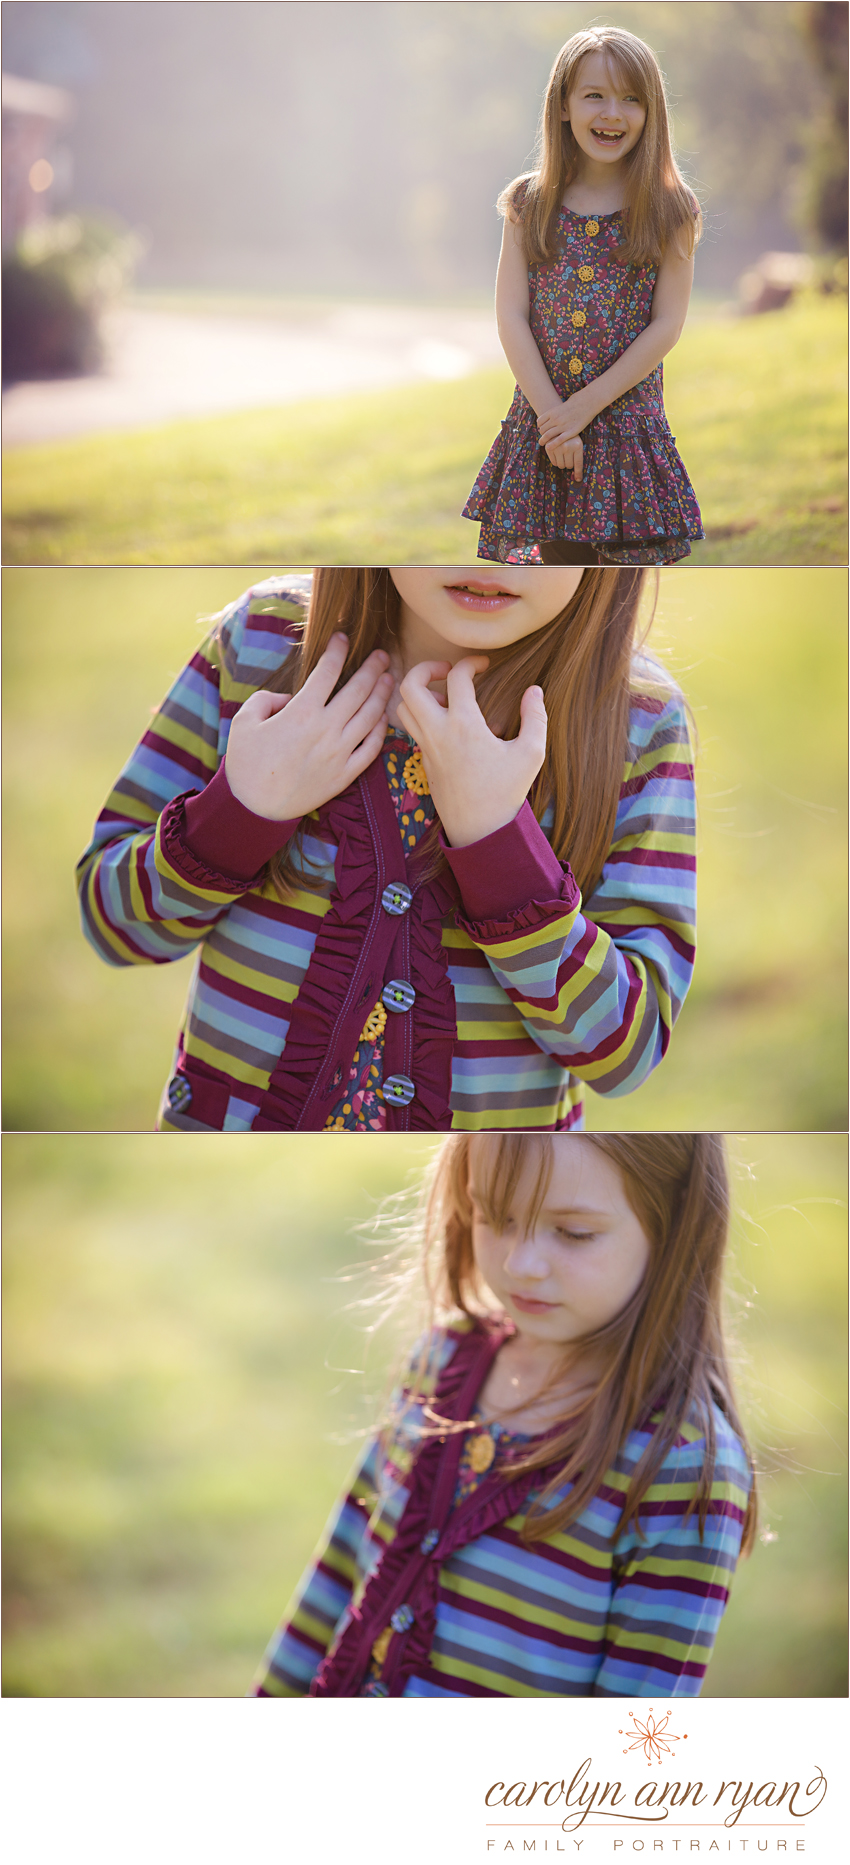 North CarolinaChild Photographer, Carolyn Ann Ryan, photographs child wearing Matilda Jane outfit from the Paint By Numbers Collection